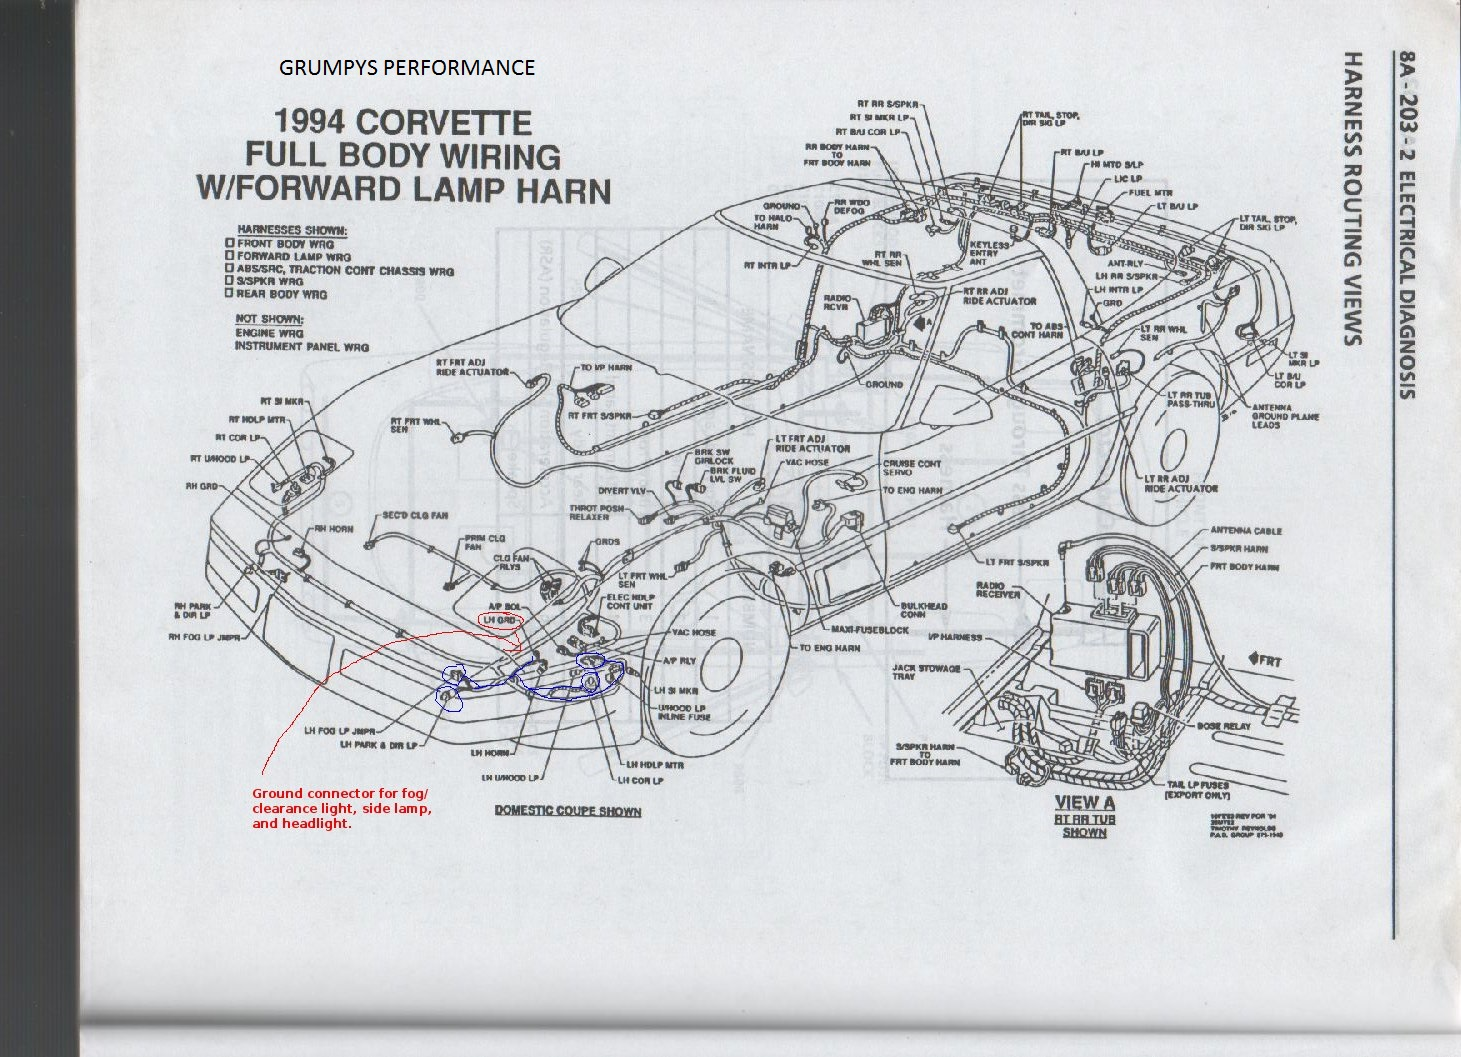 hight resolution of mounting an effective trans cooler on a c4 corvette 1997 chevy lumina wiring diagram 1998 chevy